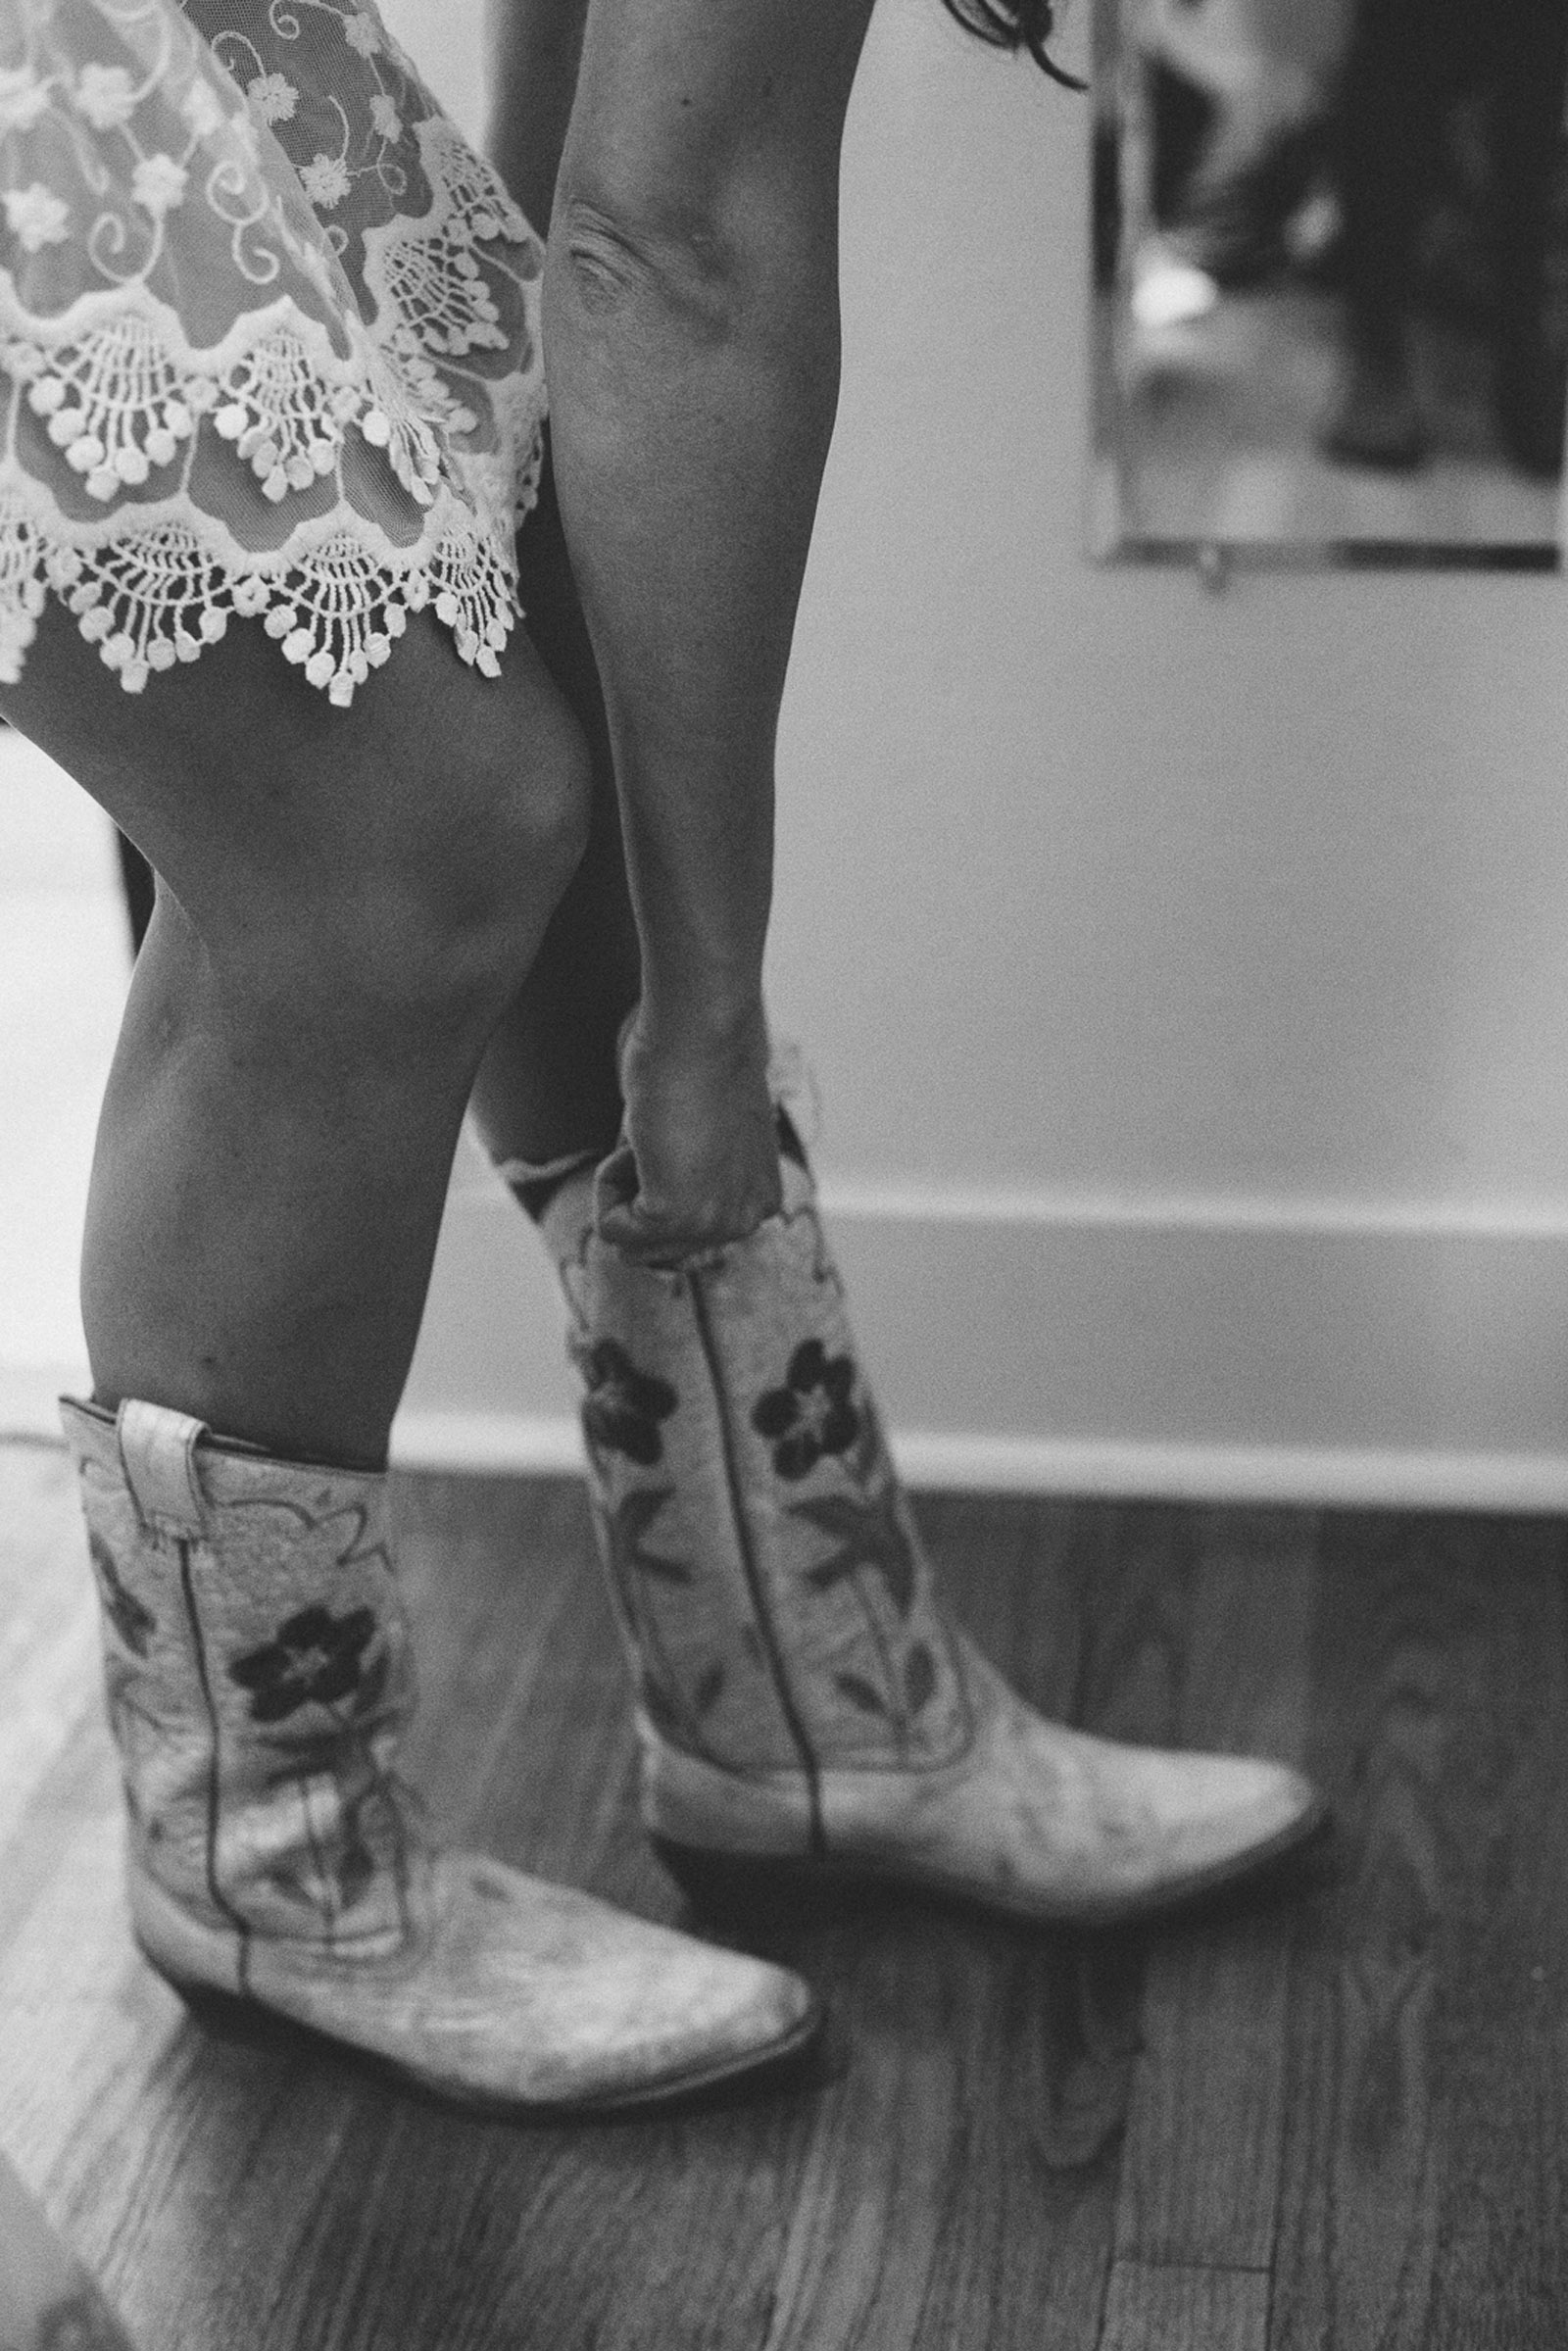 033-durango-wedding-dress-bride-boots